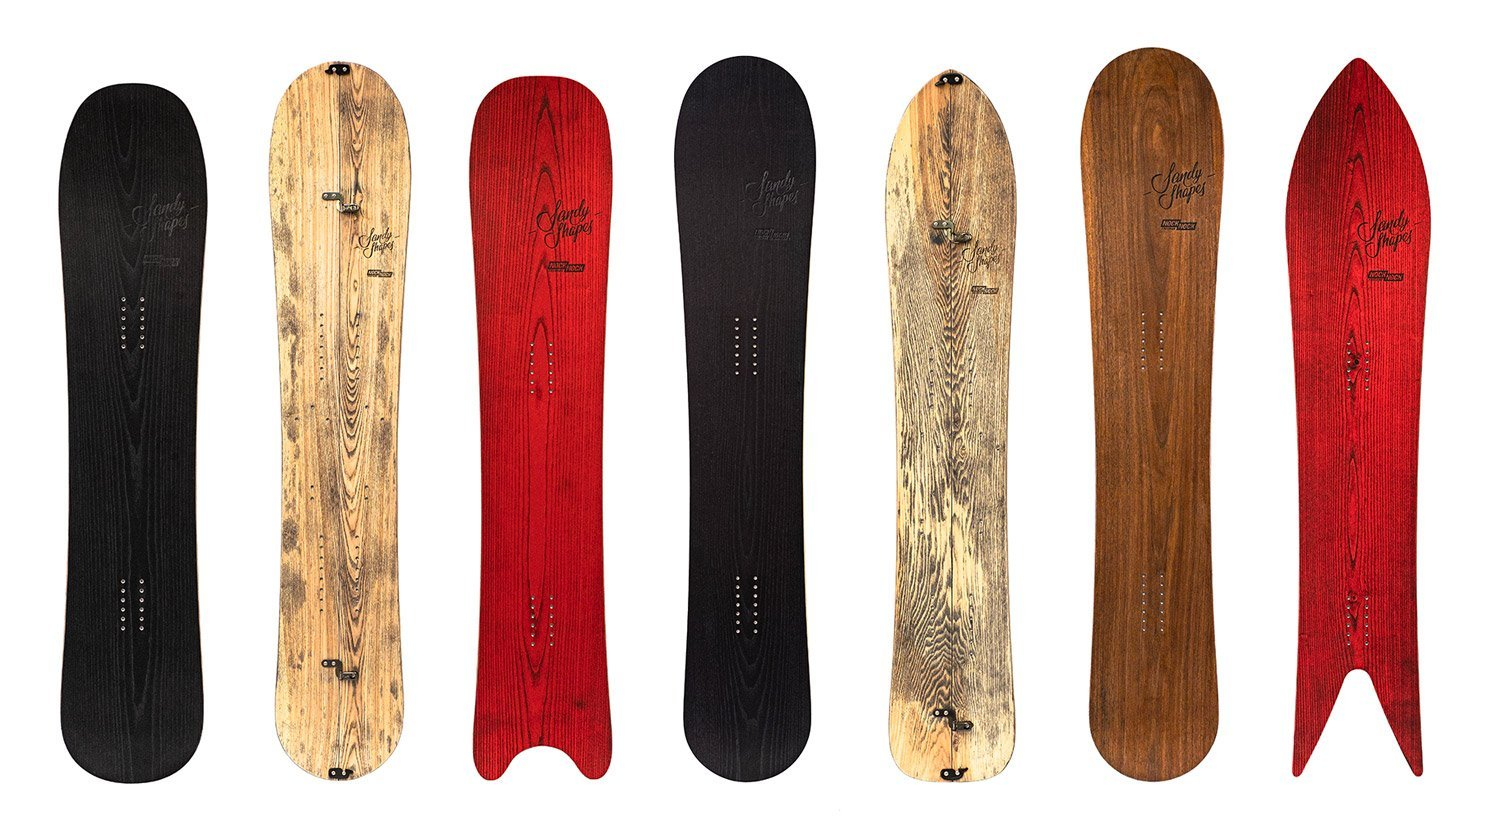 custom snowboard series by Sandy Shapes for NockNock shop